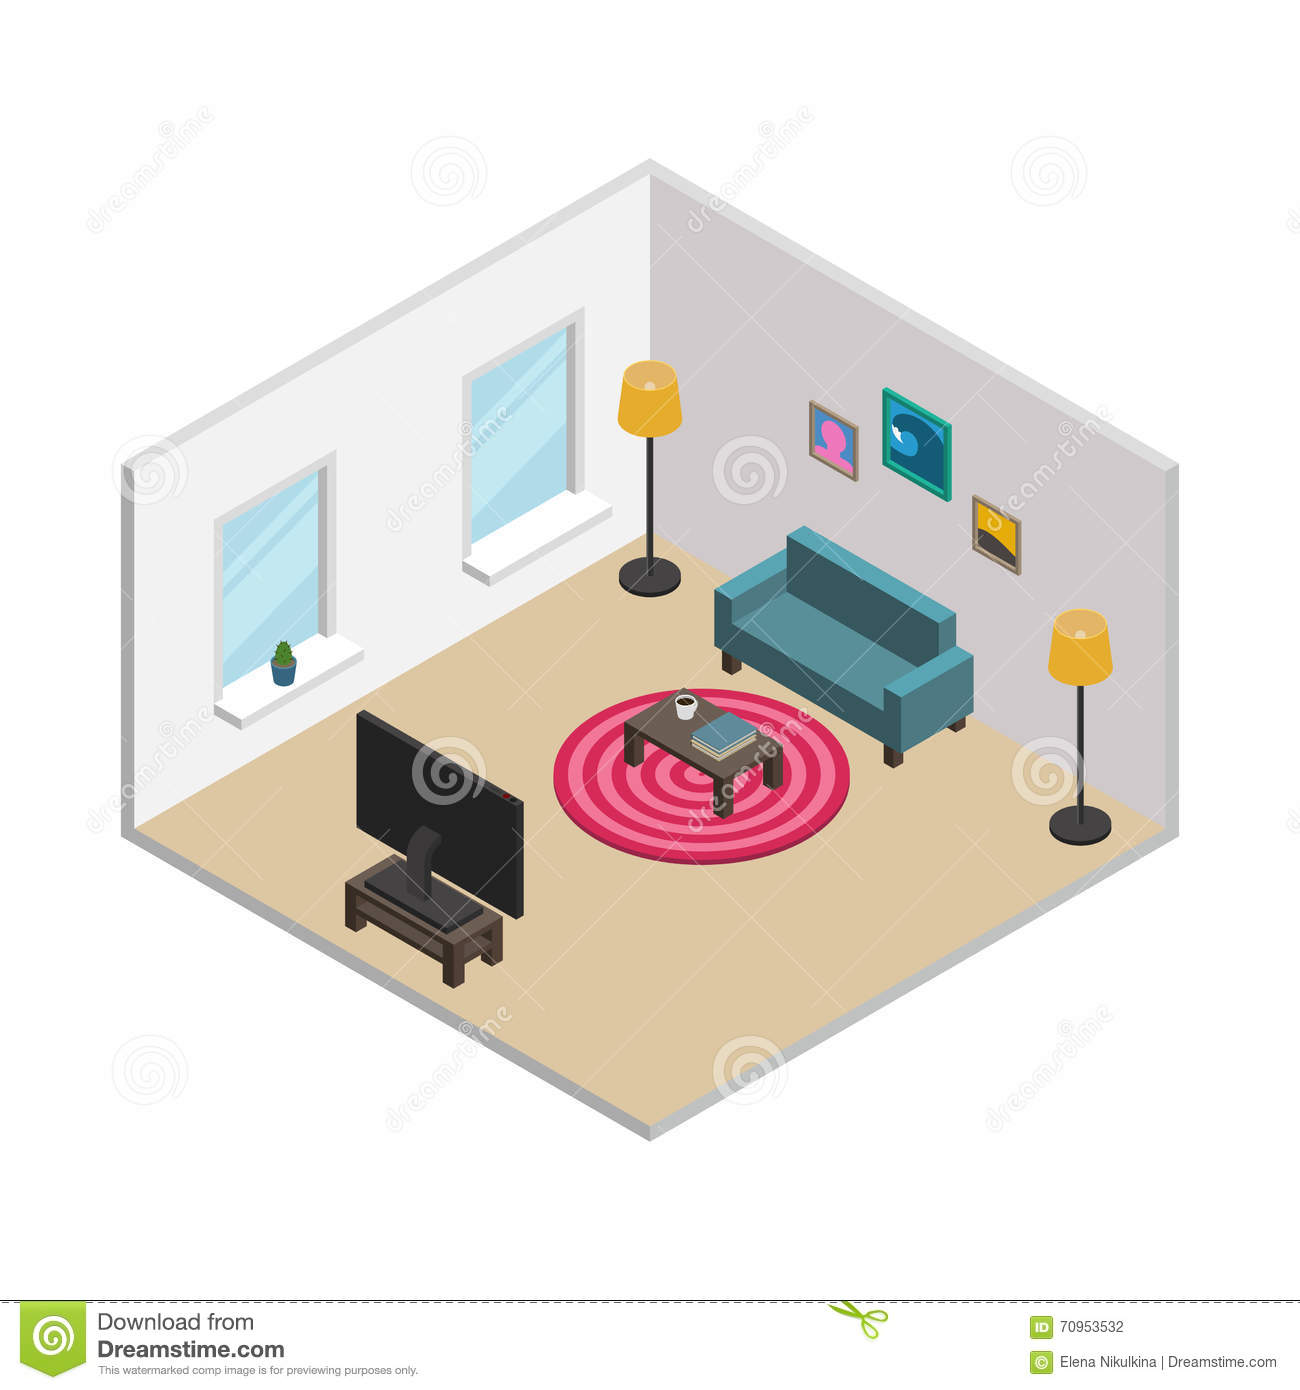 3d Floor Plan Isometric: Isometric Living Room With White Walls, Windows And